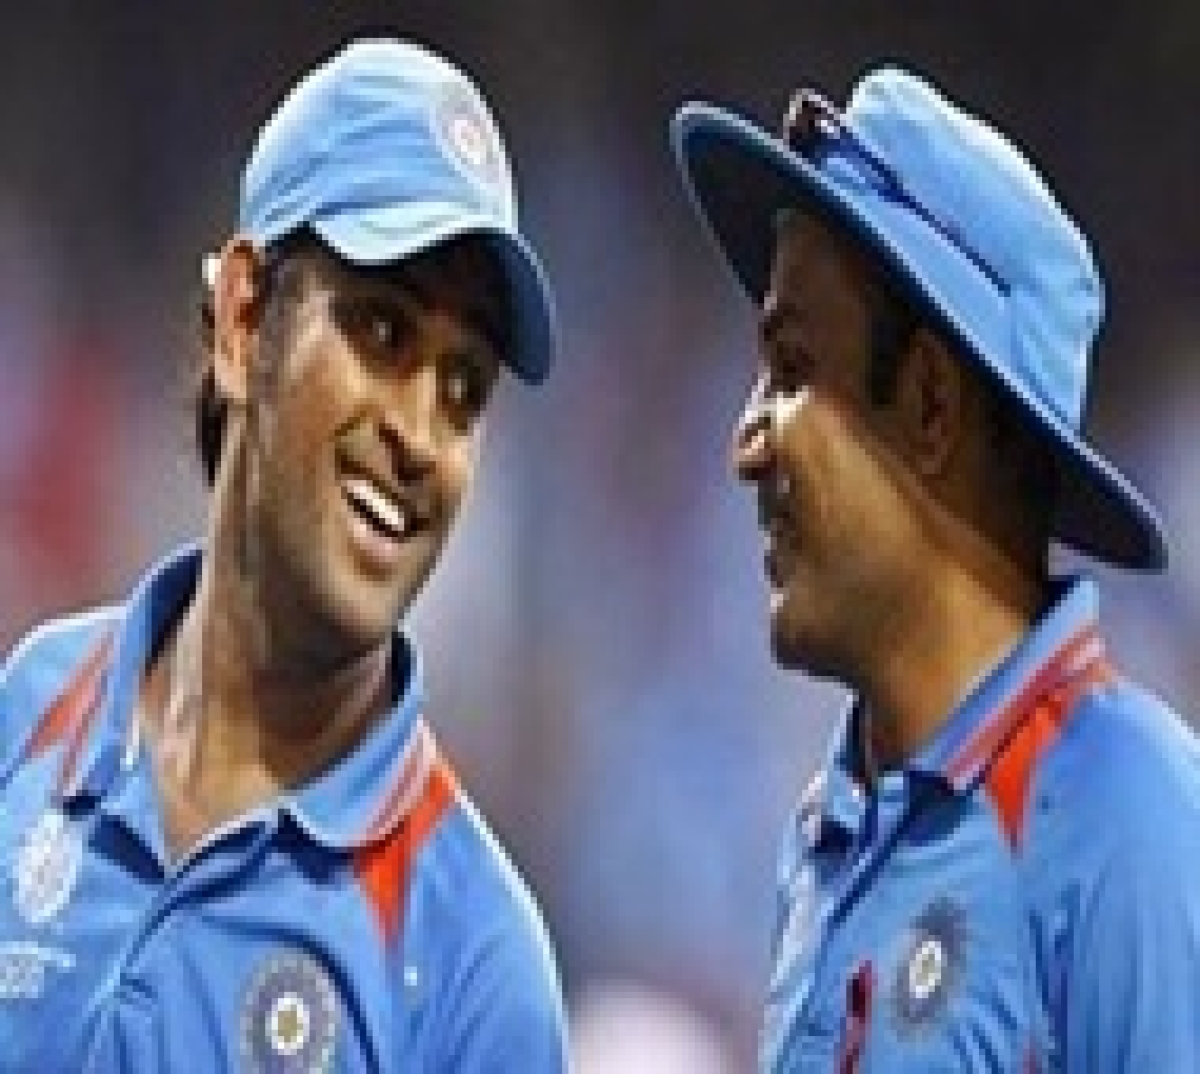 Dhoni should bat at number 4 and continue till 2019 WC: Sehwag